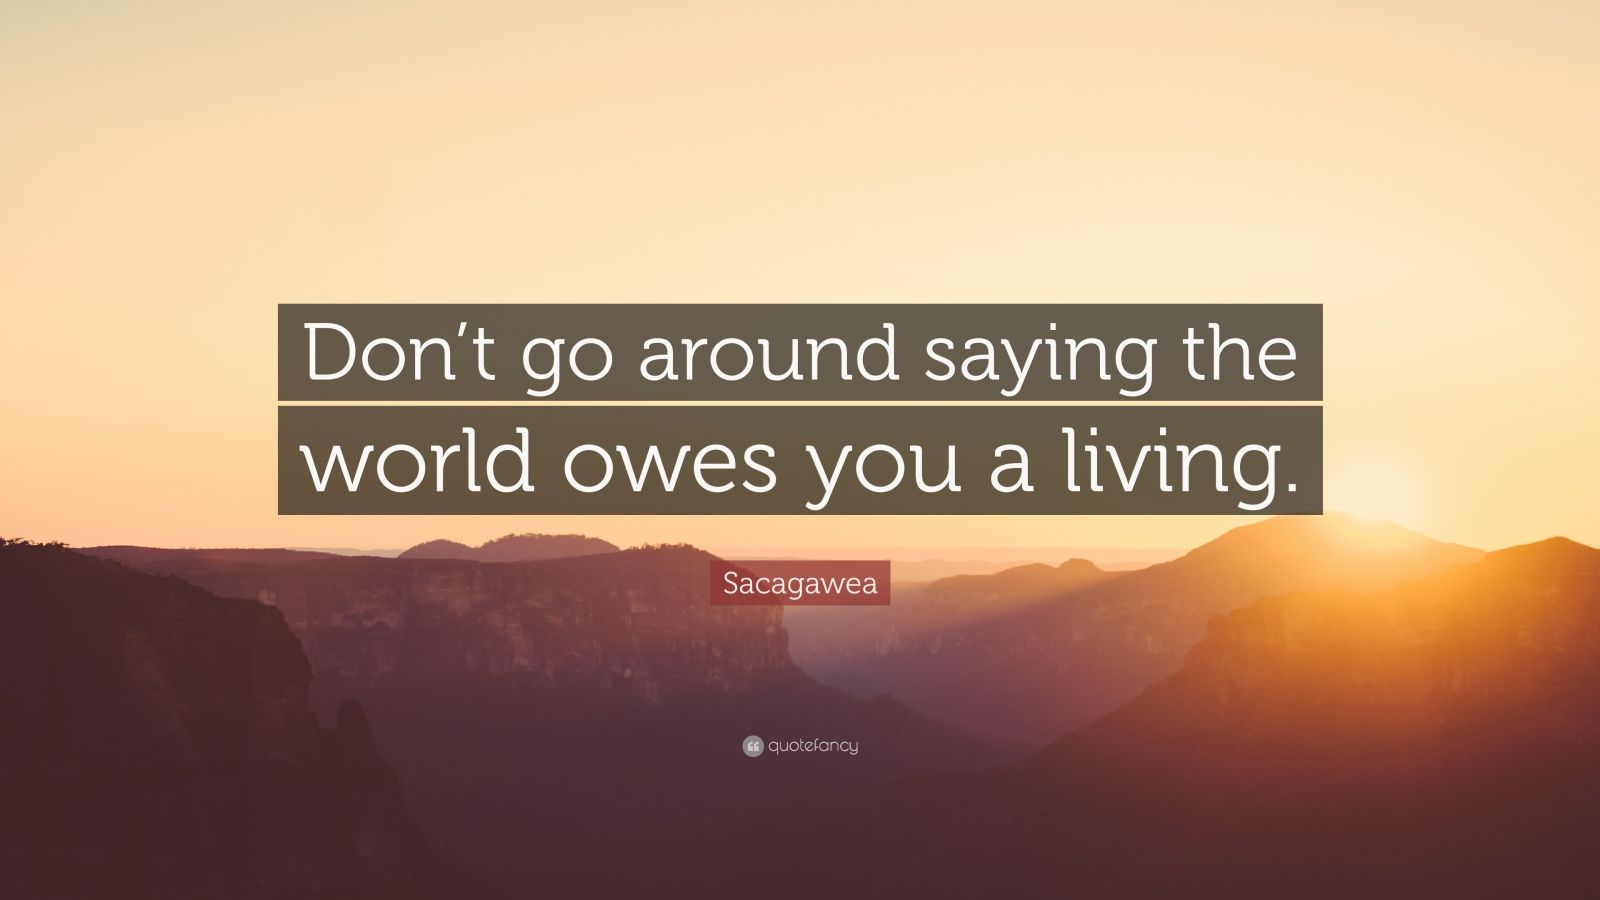 Steve Jobs Motivational Quotes Wallpaper Sacagawea Quote Don T Go Around Saying The World Owes